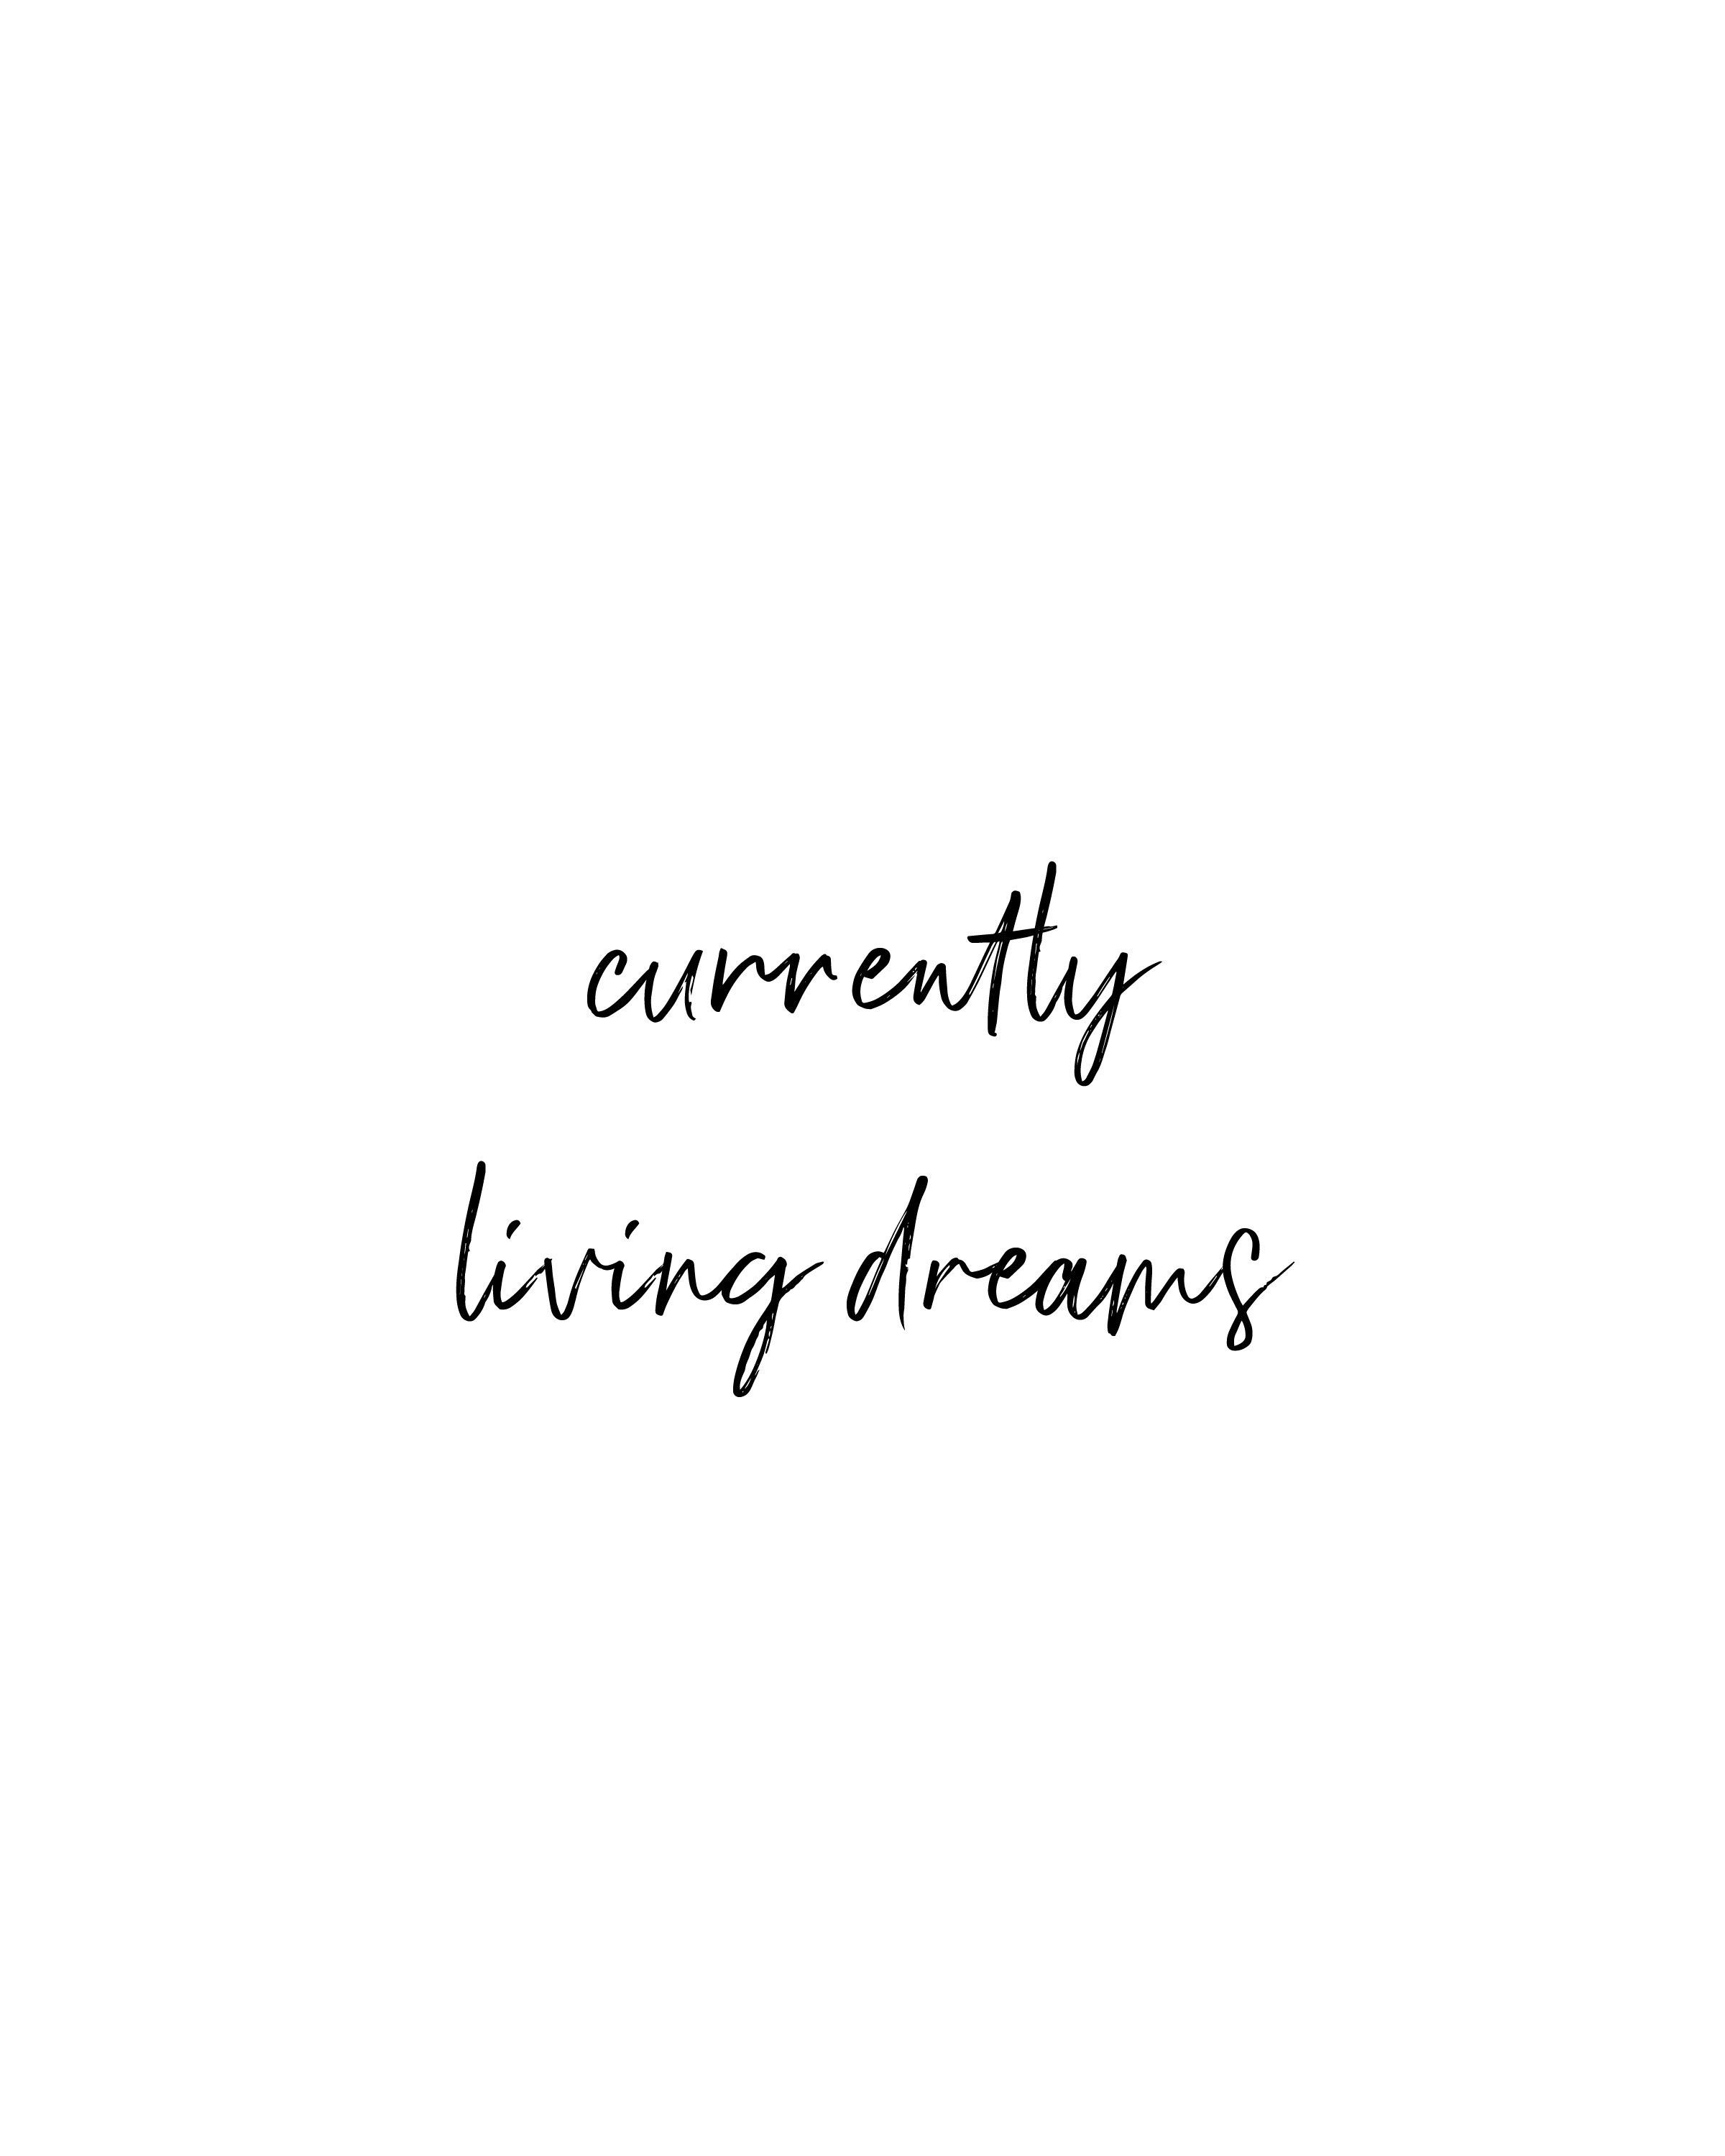 Currently Living Dream Printable Quote The Hello Bureau Etsy Hustle Quotes Quotes White Quote Aesthetic